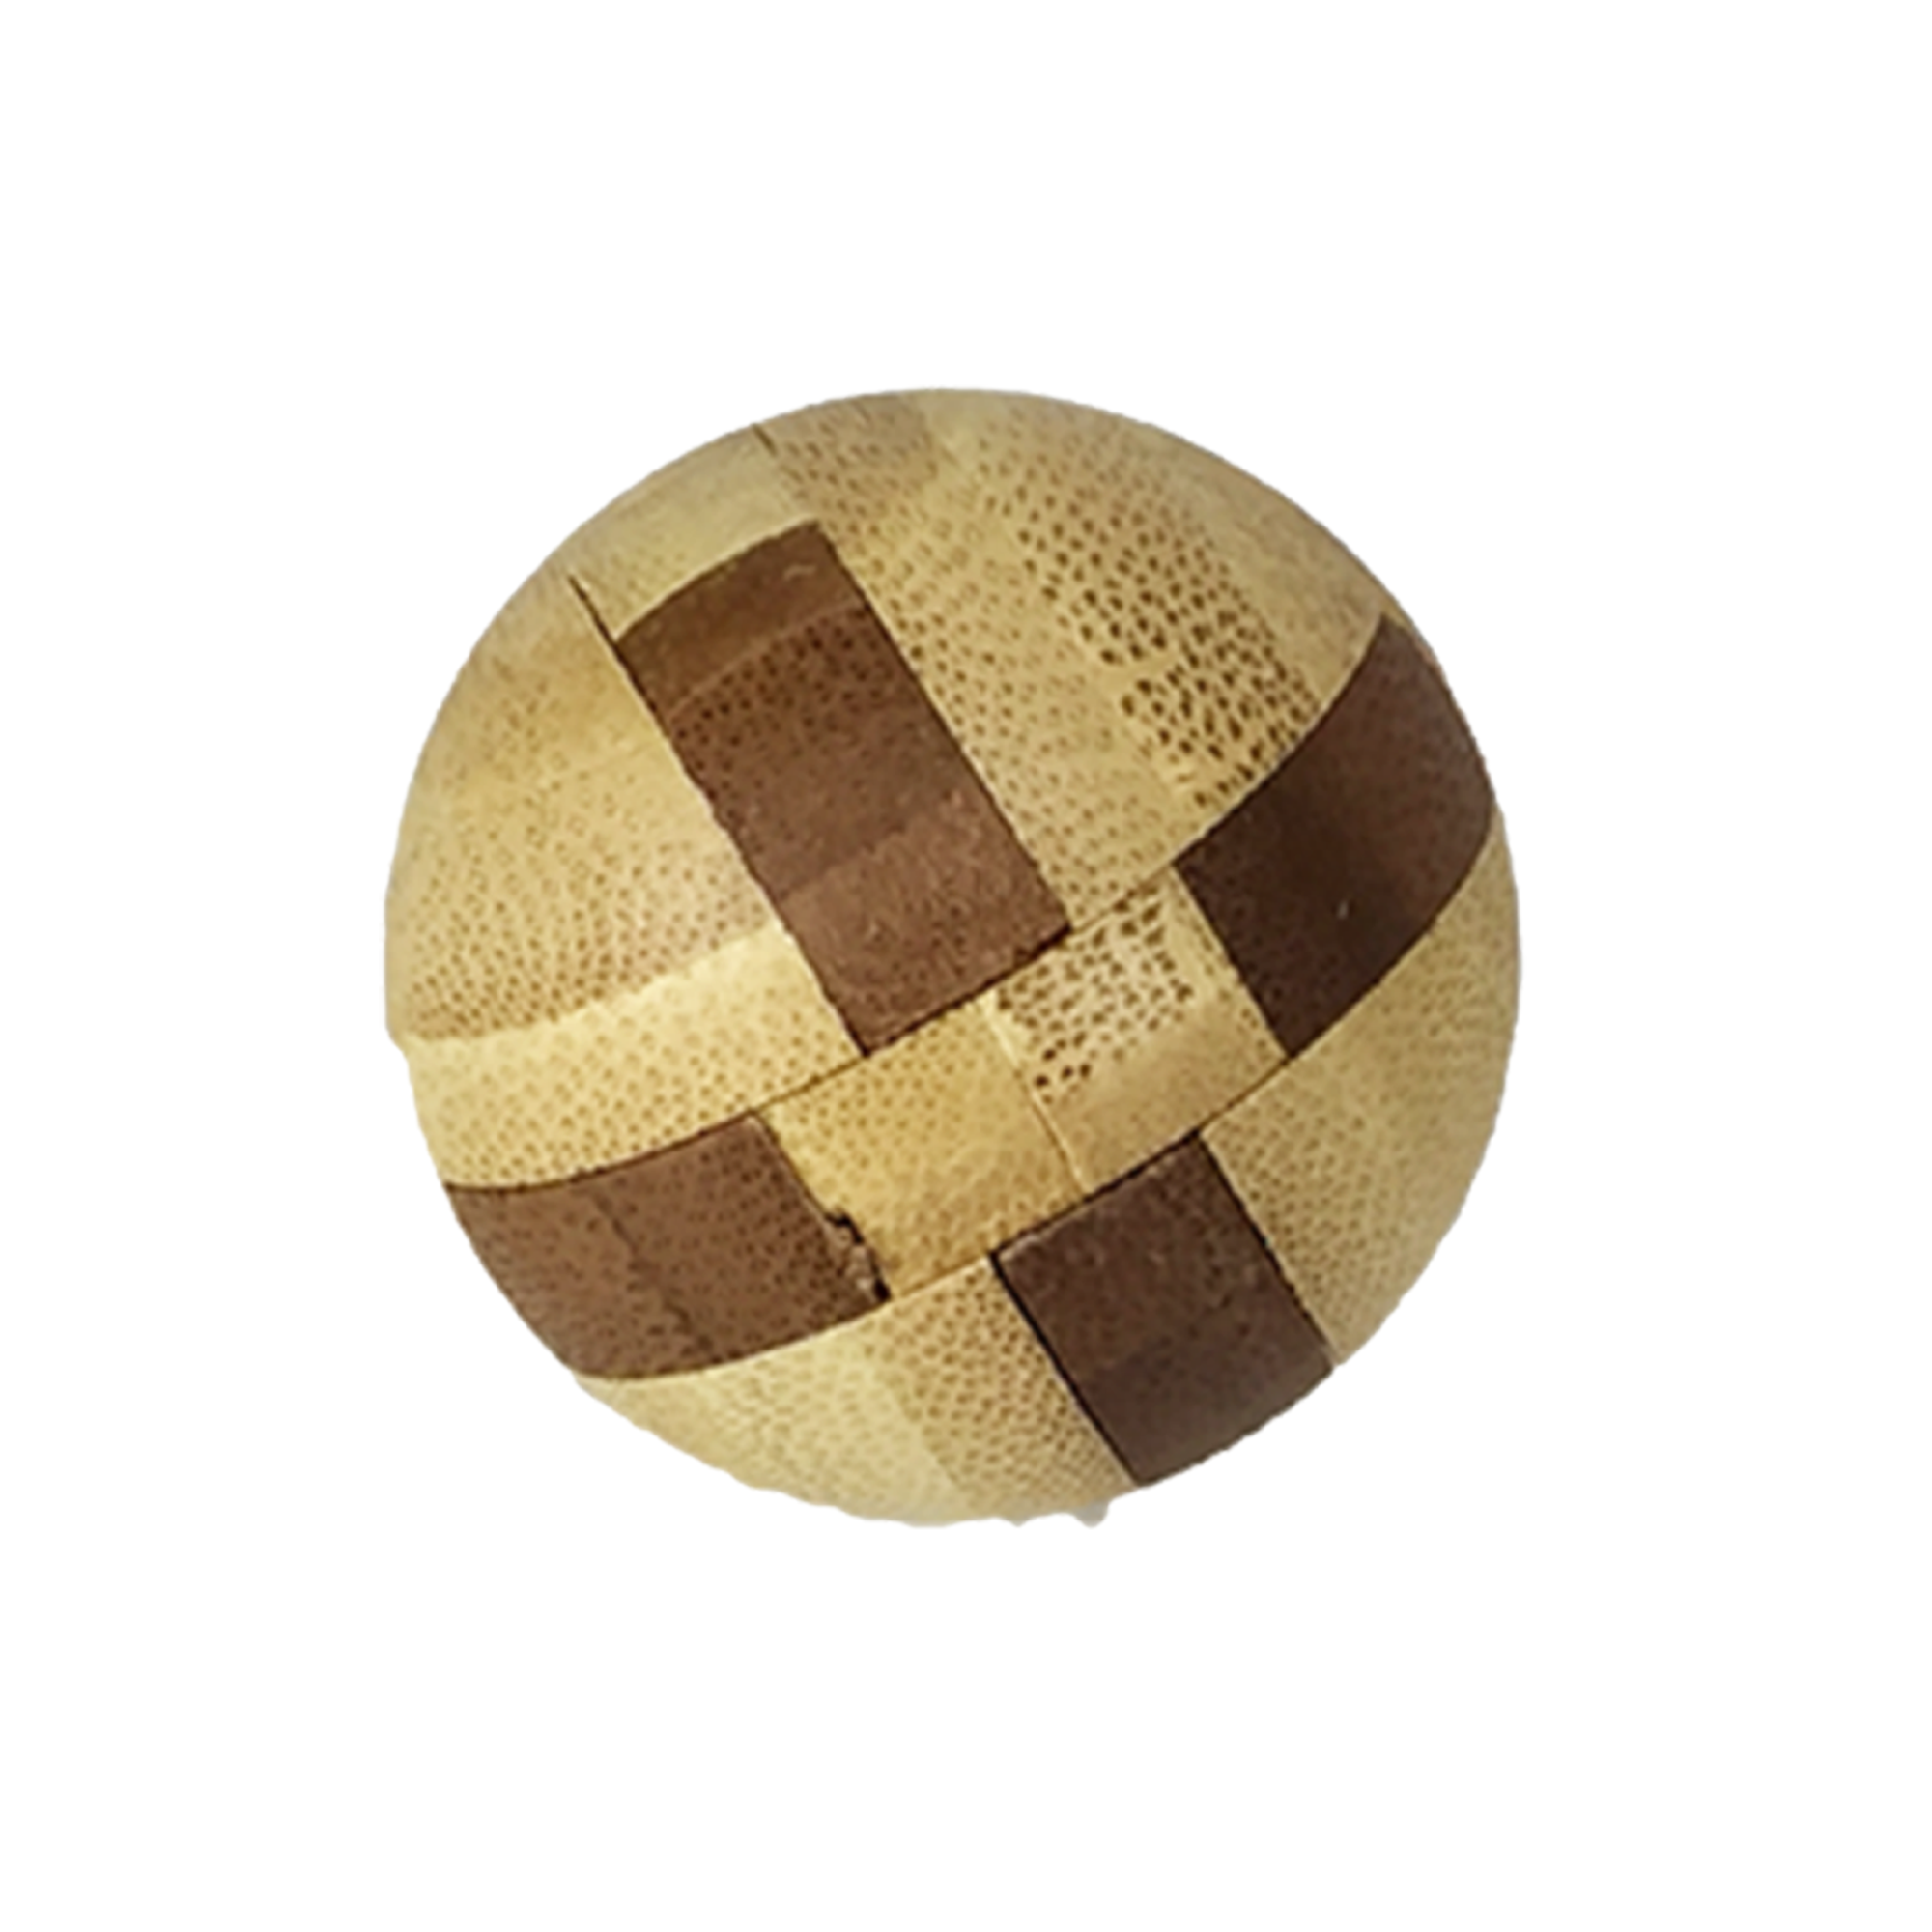 Project Genius Bamboo Puzzle: The Pod (1 of 6)